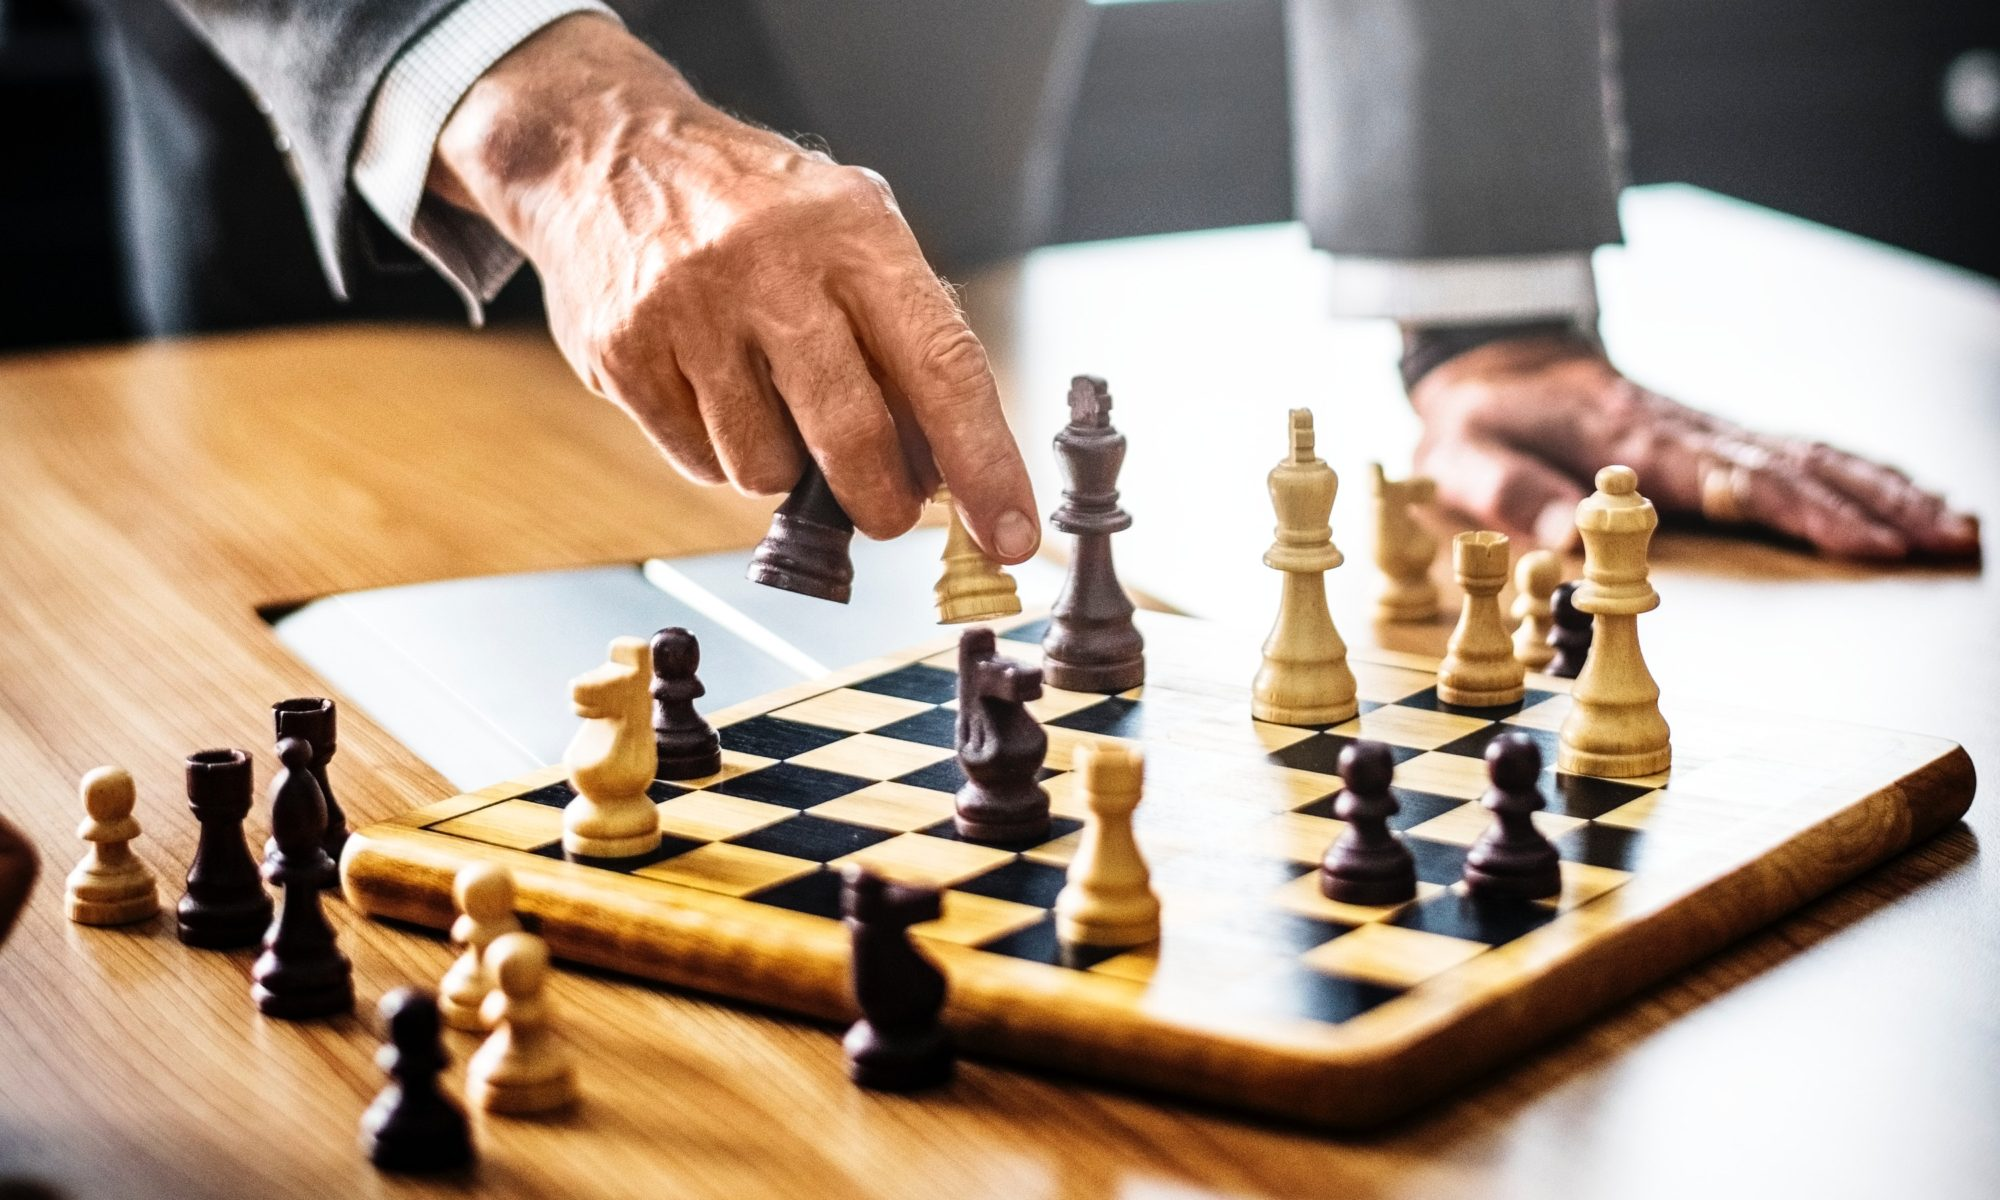 Chossing a move in a game of chess